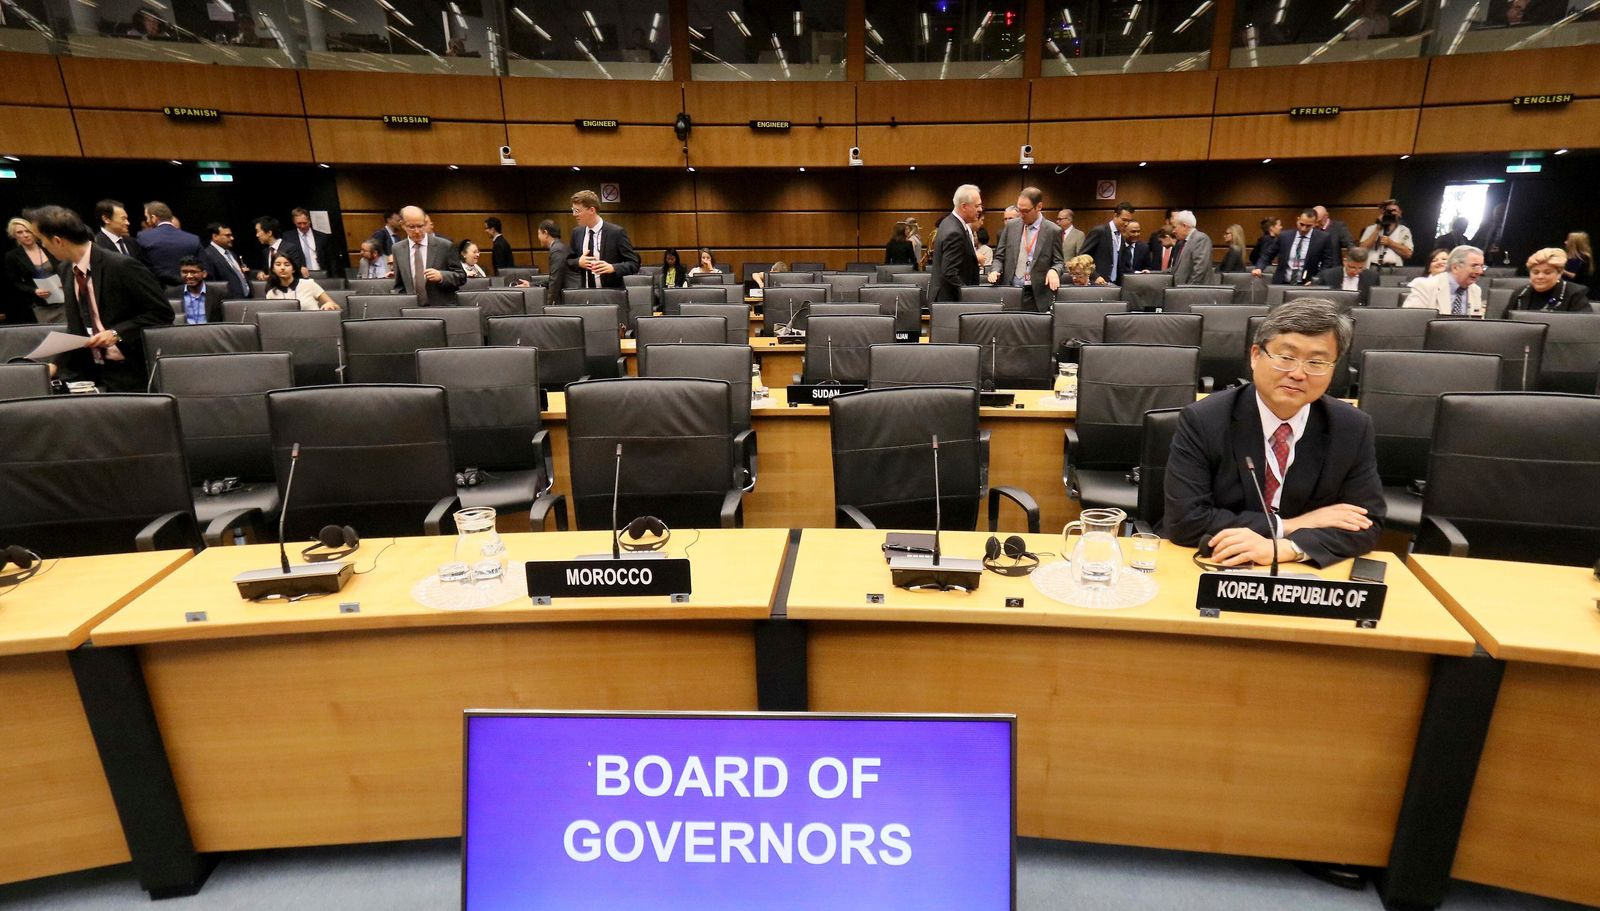 General view of the board of governors meeting of the International Atomic Energy Agency, IAEA, at the International Center in Vienna, Austria, Thursday, Aug. 1, 2019. (AP Photo/Ronald Zak)